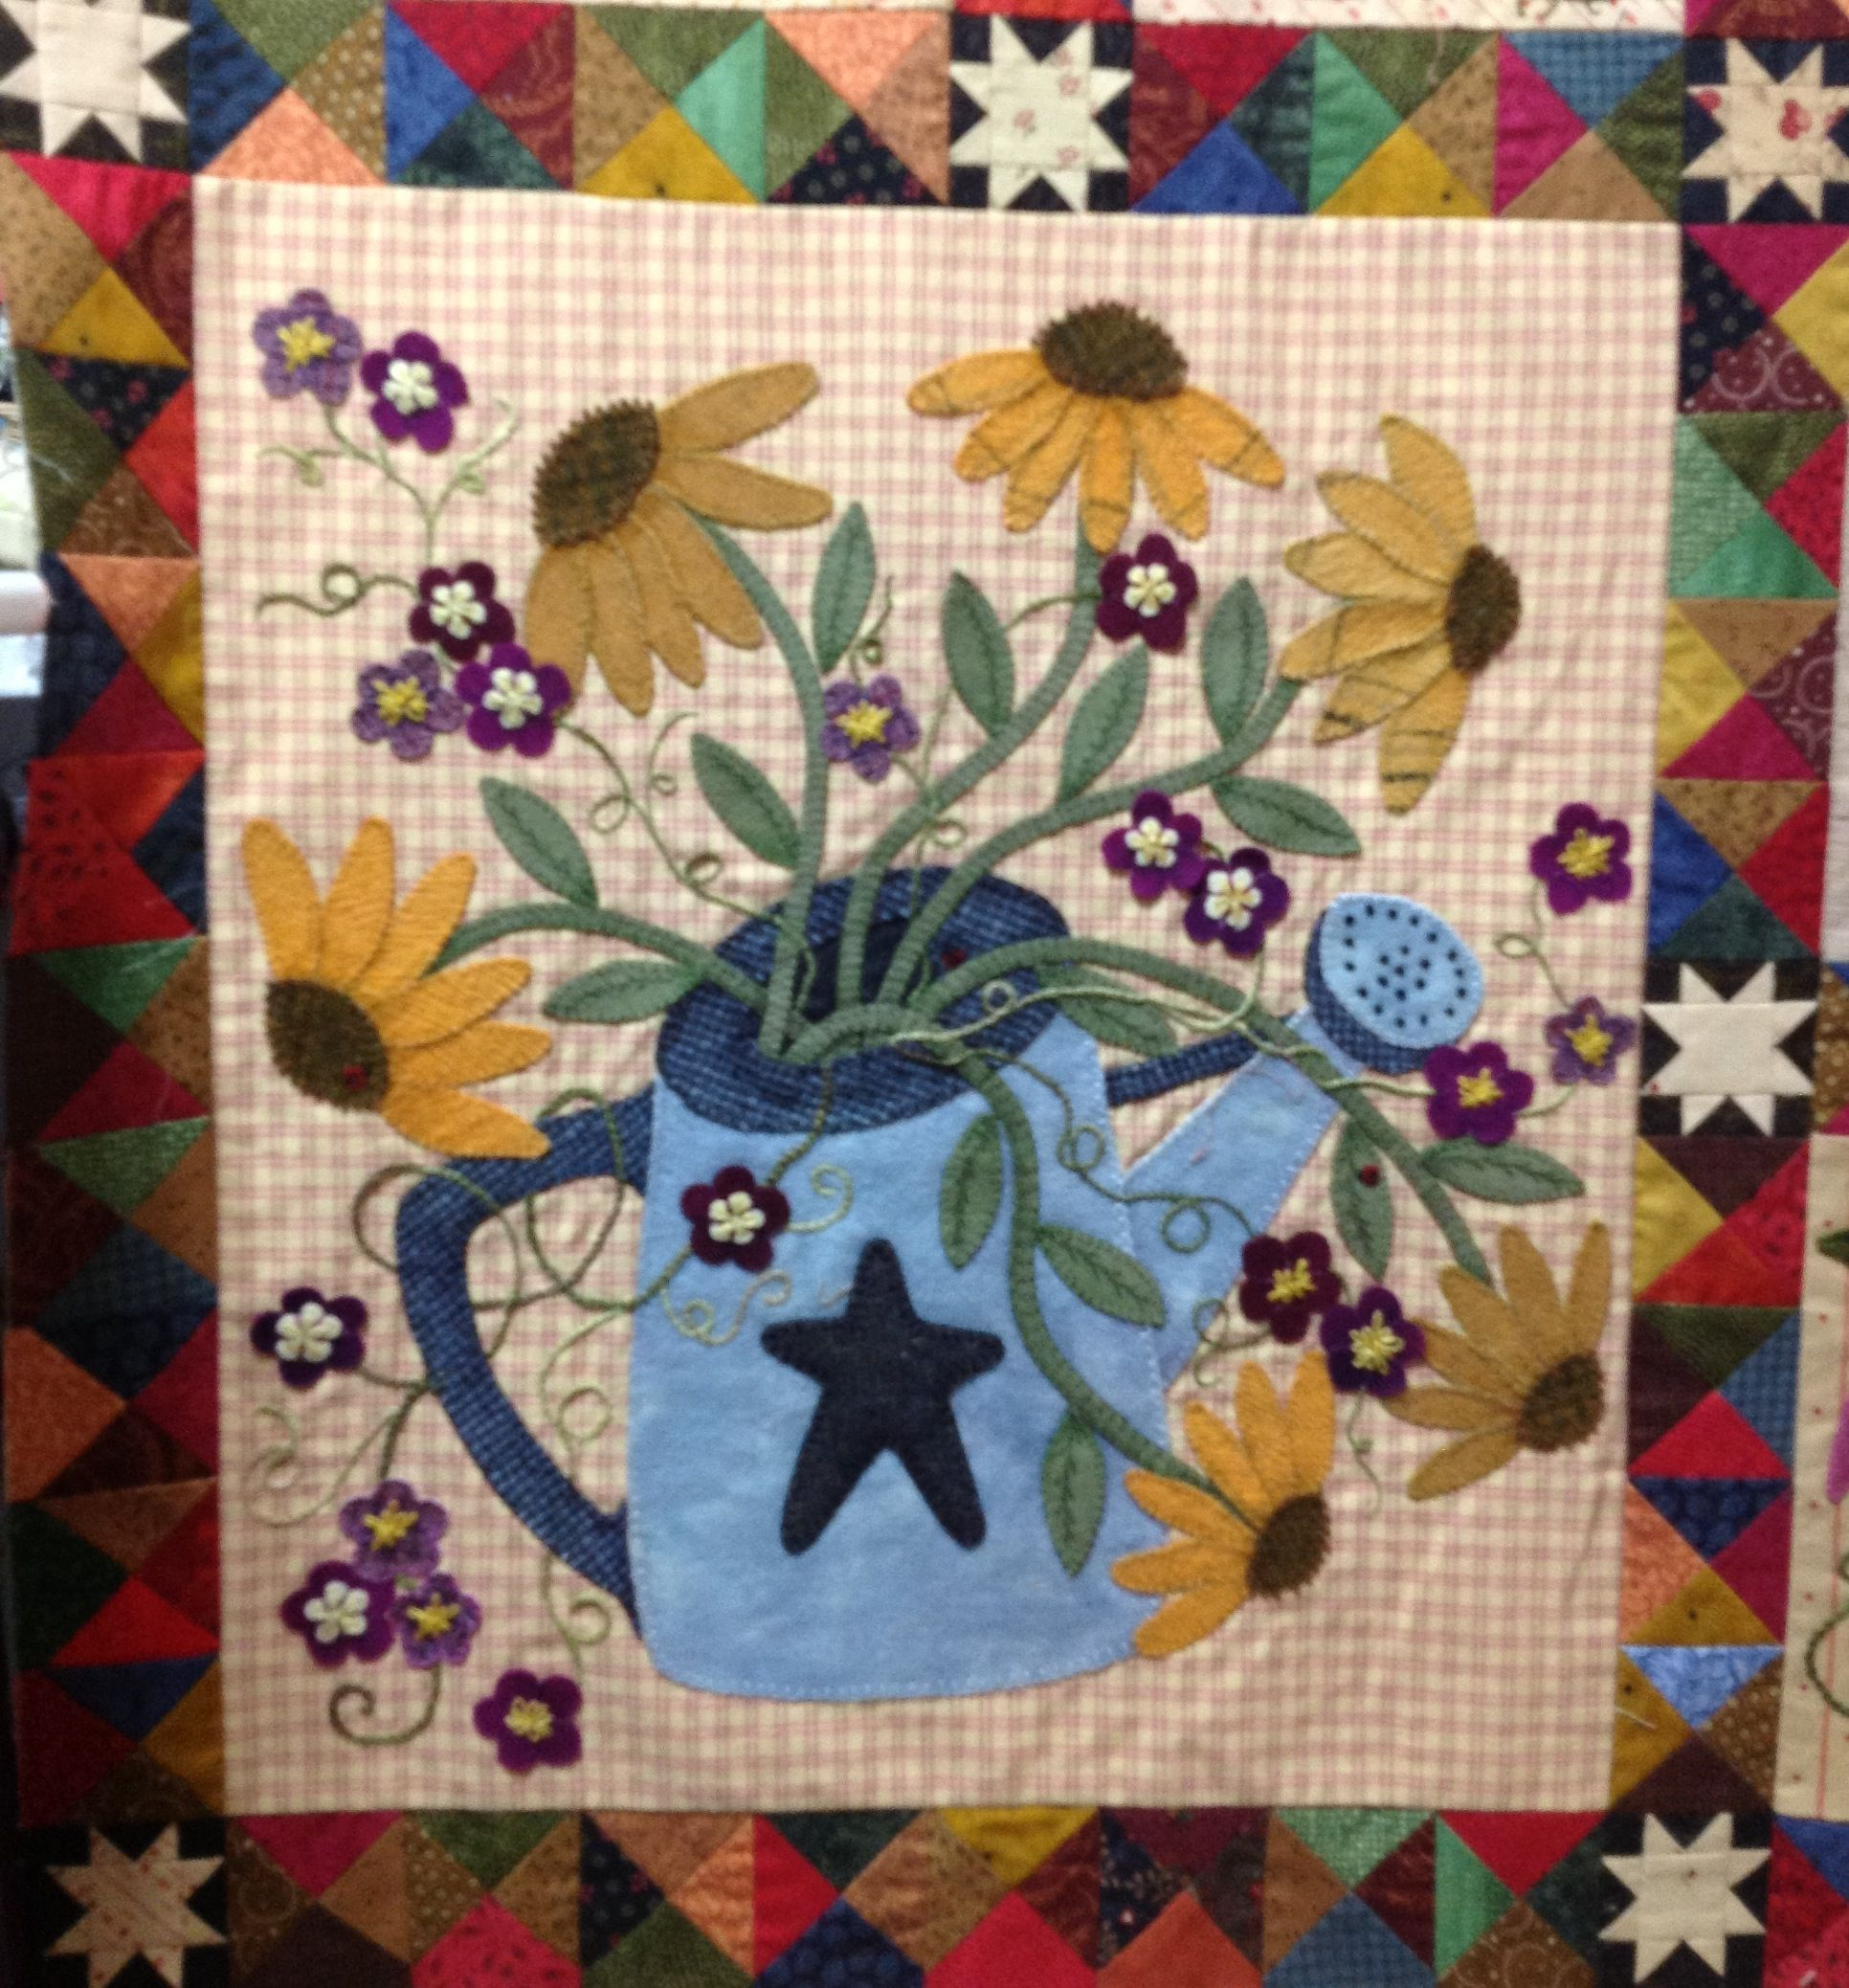 My Finished Watering Can Block Pattern From Primitive Gatherings Titled A Primitive Garden Block Made By Rho Flower Quilts Primitive Quilts Sunflower Quilts